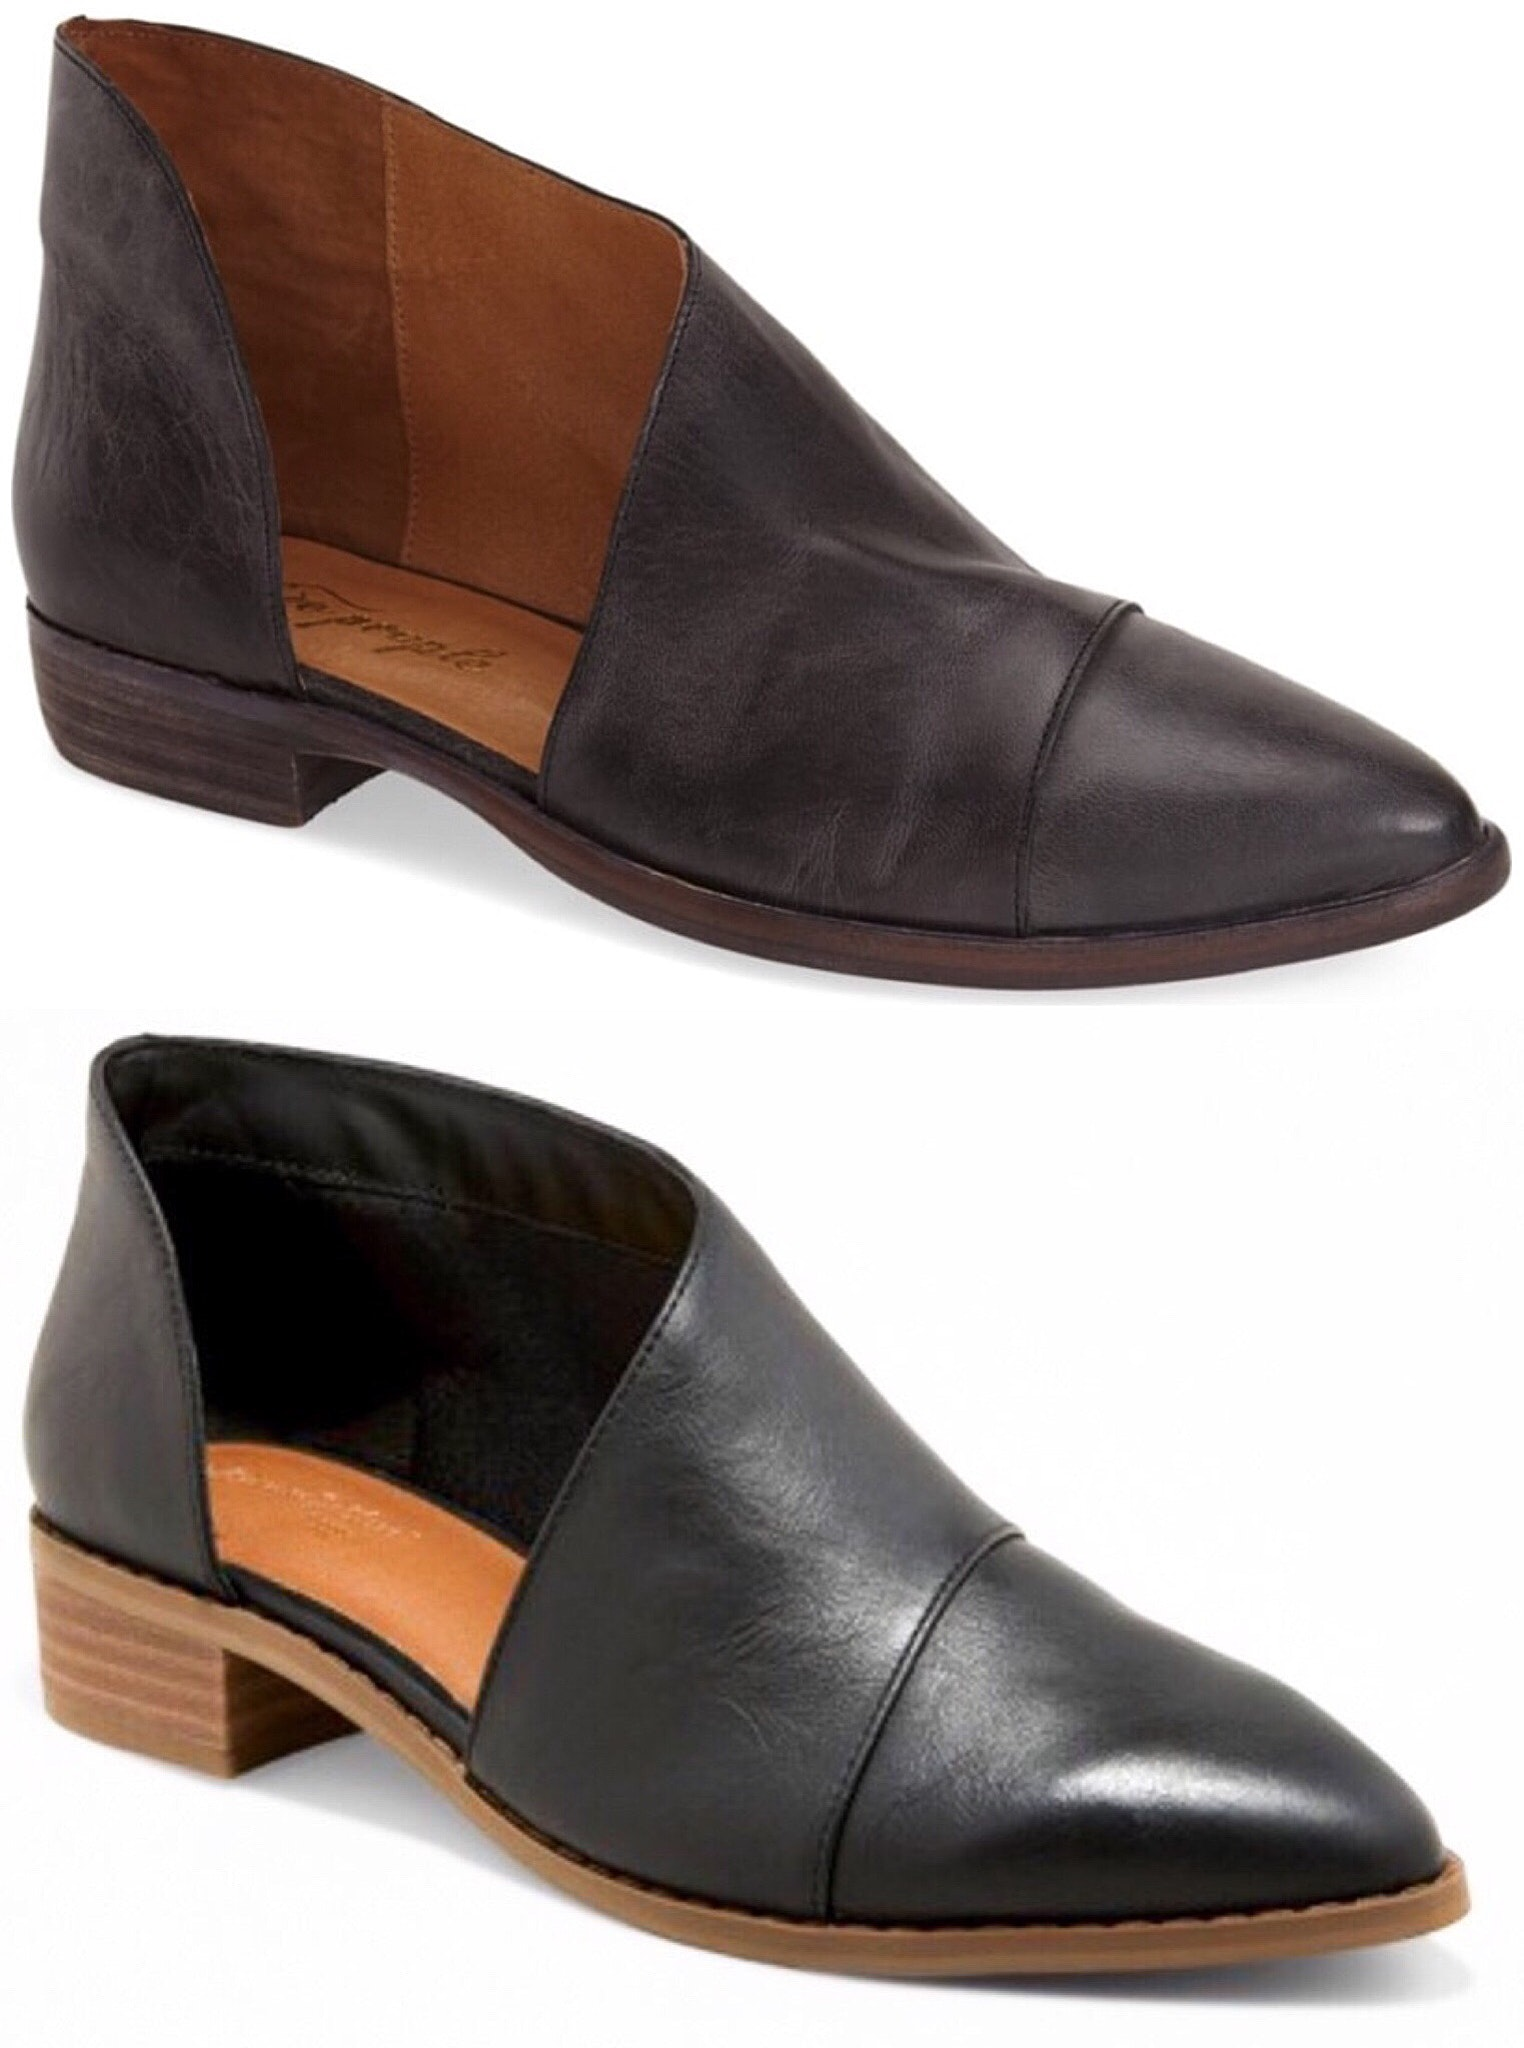 Designer looks for less - Save on fall shoe styles